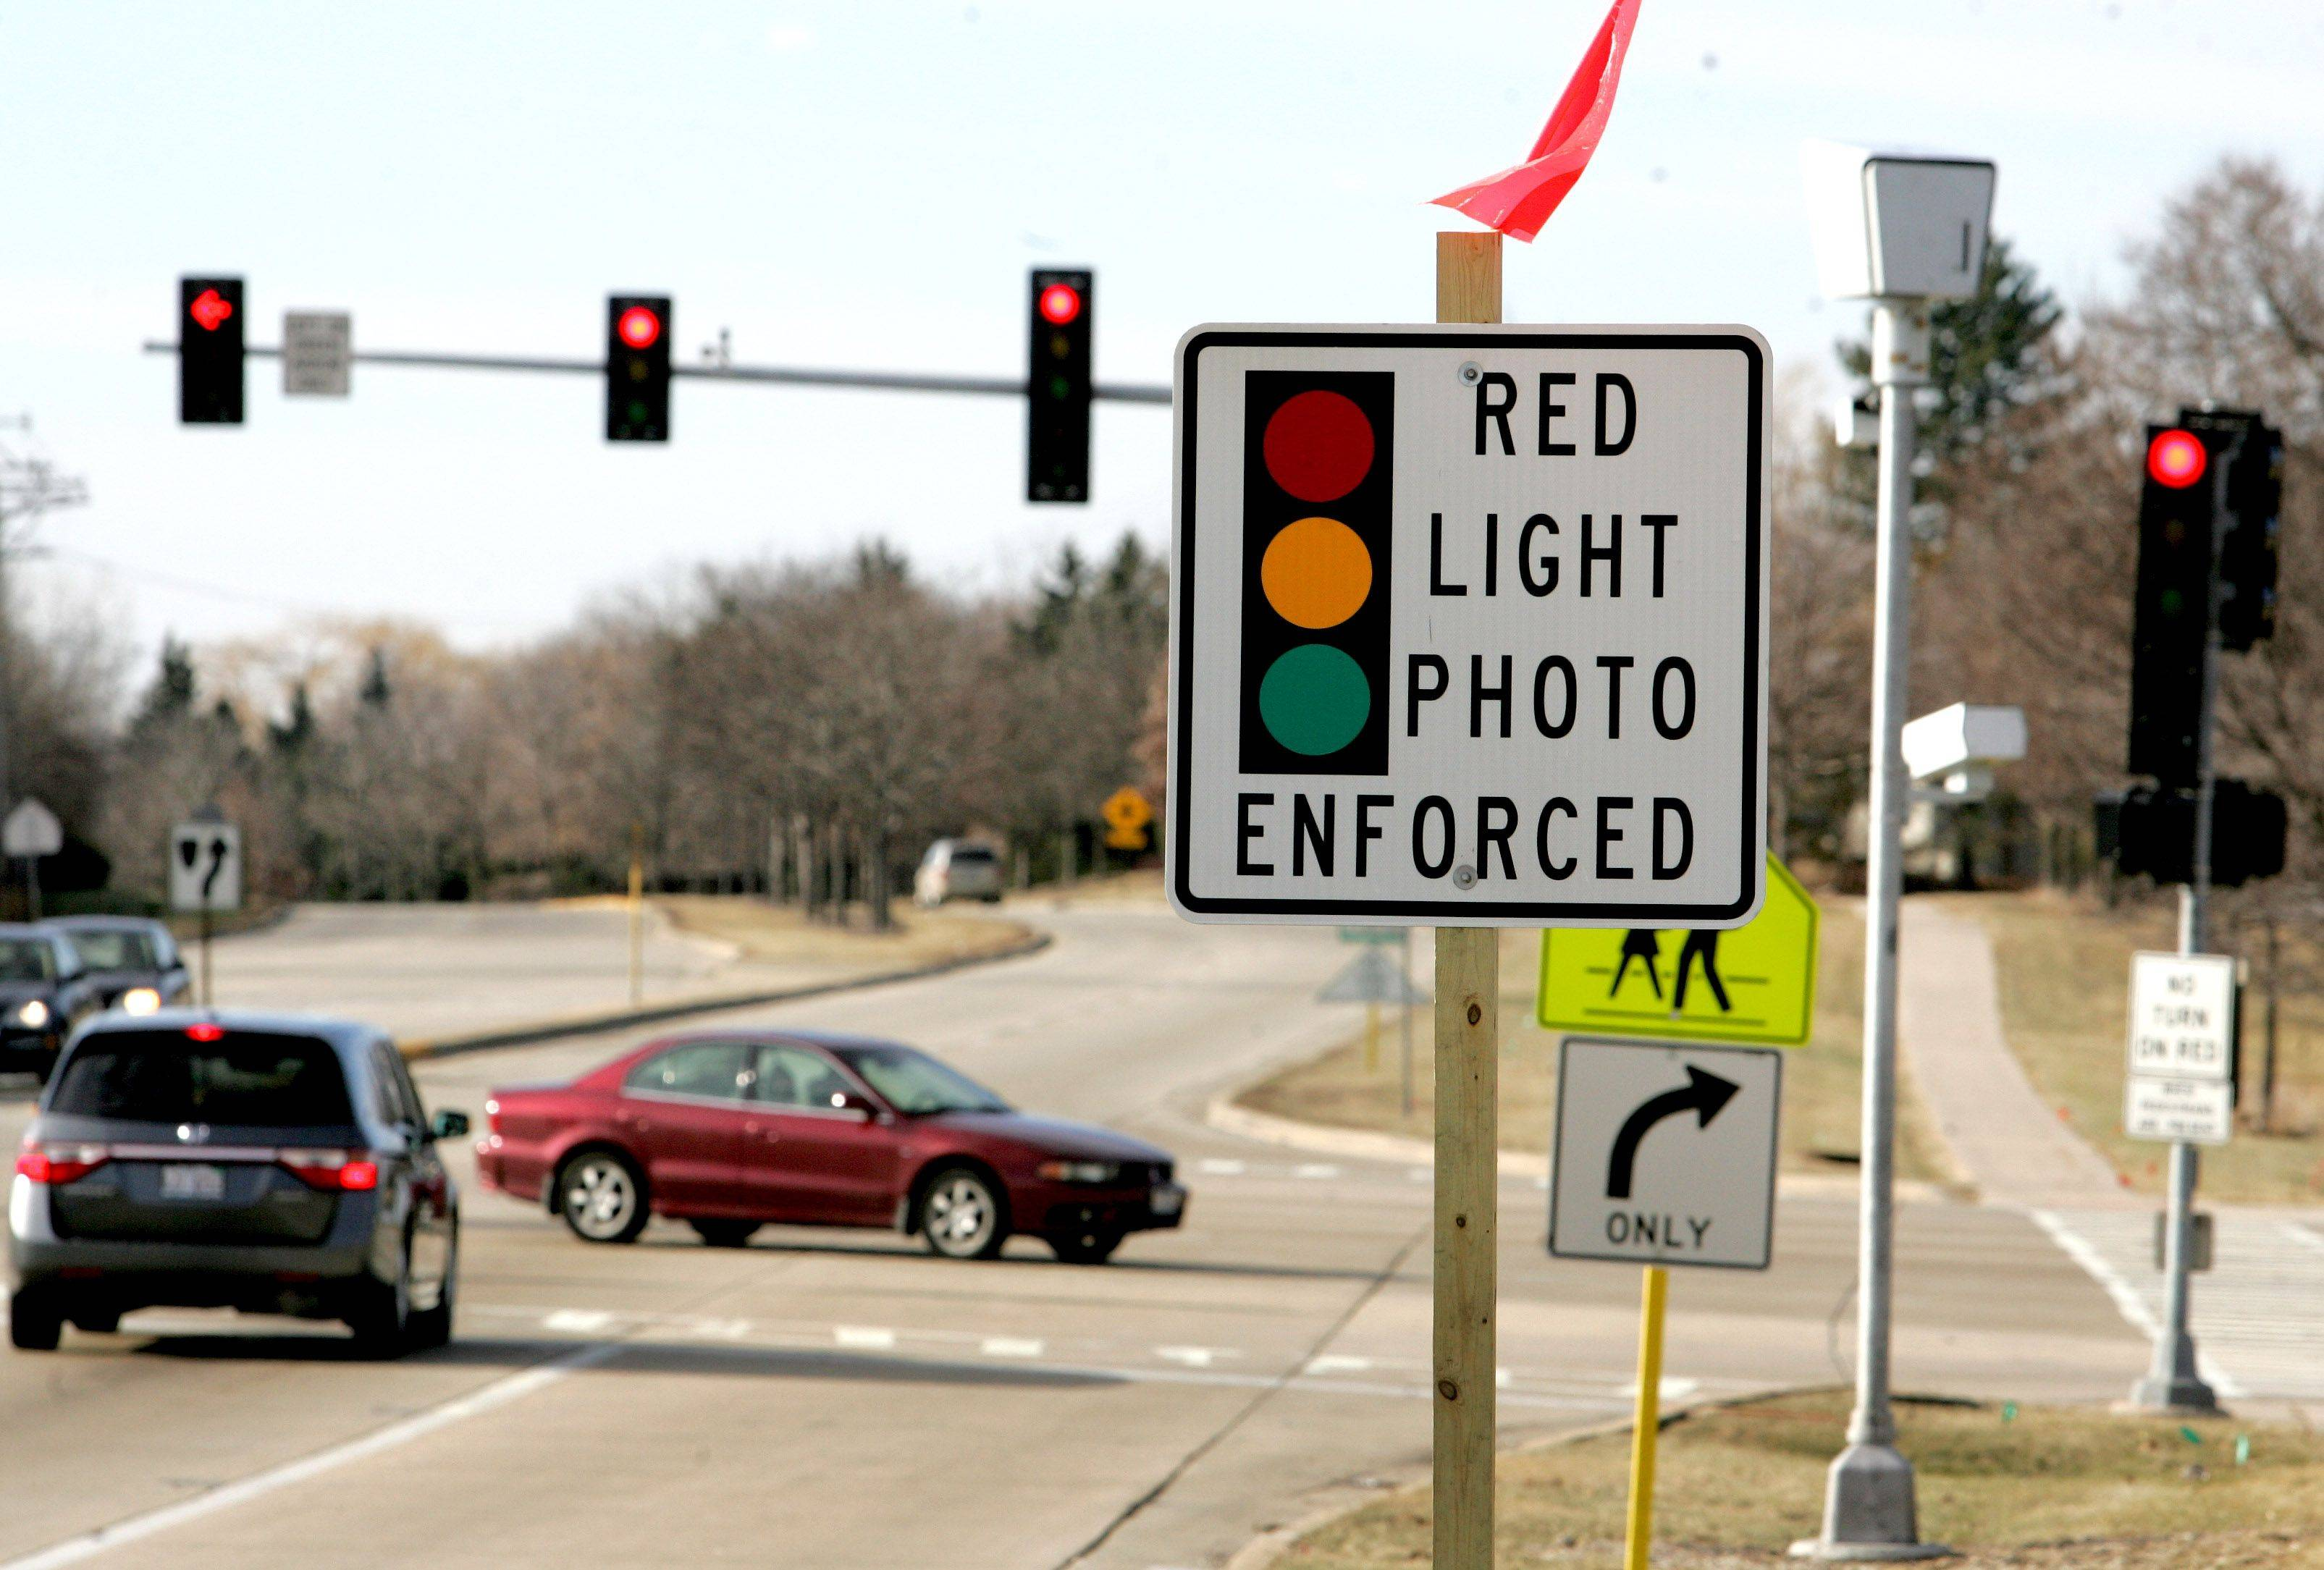 More than a year after putting the issue on hold, DuPage County Board members are slated to discuss the possibility of allowing red-light cameras at county-controlled intersections.